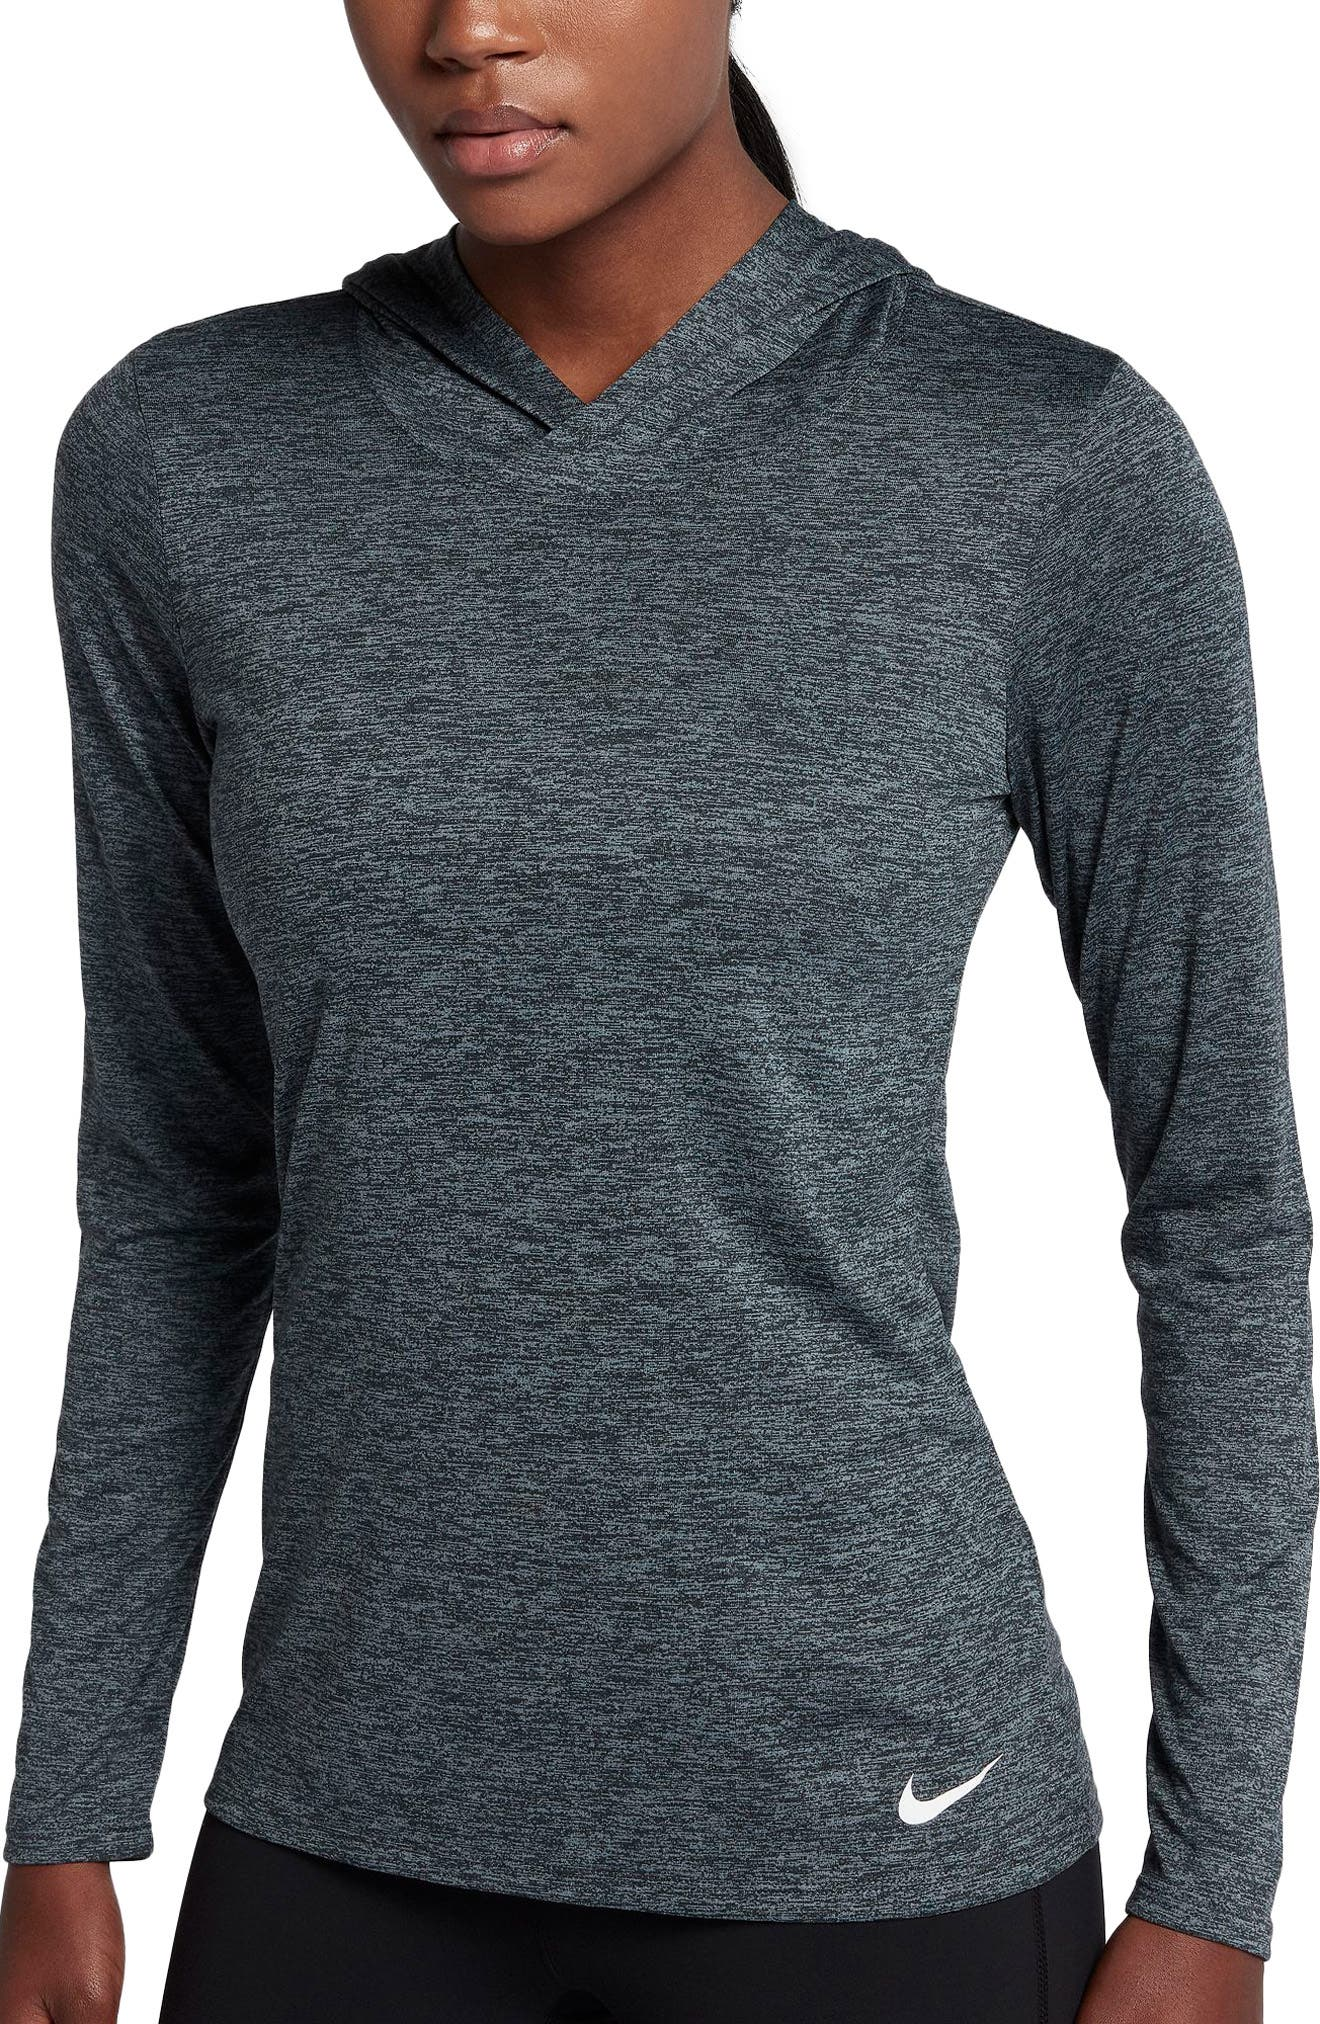 Dry Legend Hooded Training Top,                         Main,                         color, 010